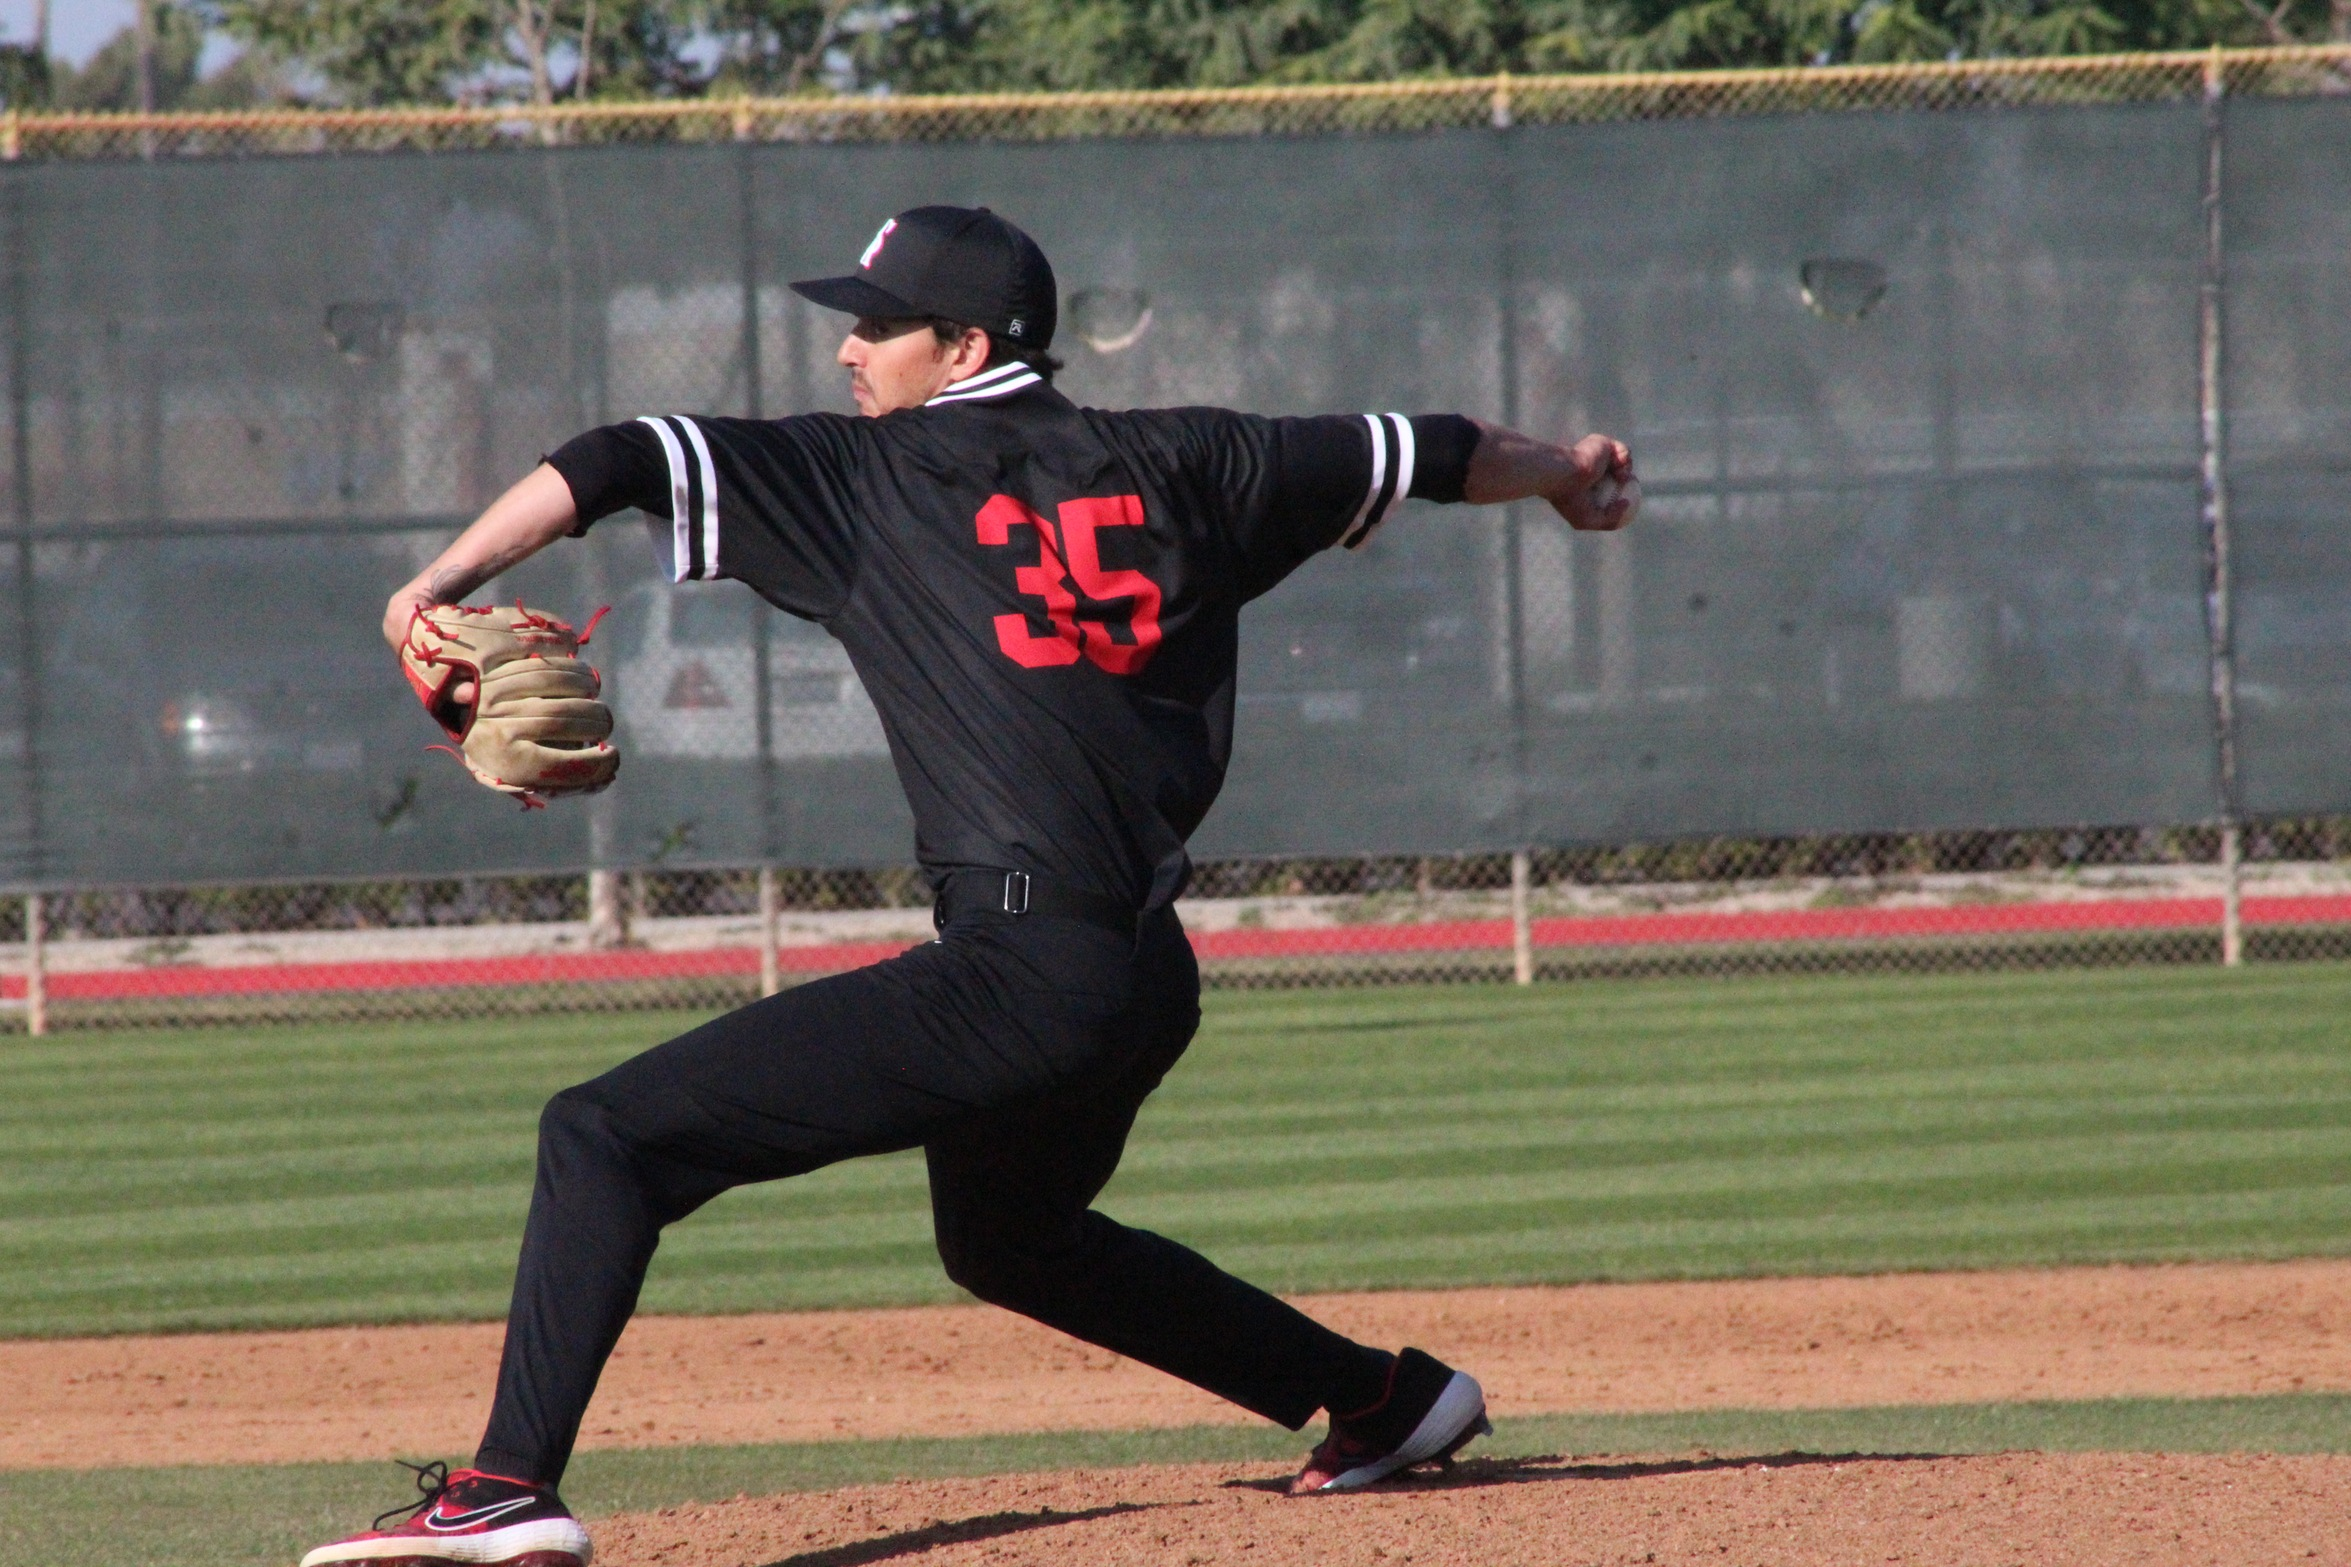 Lopez Comes Up Clutch While Samuels Finishes Strong in 5-4 Win Over GWC